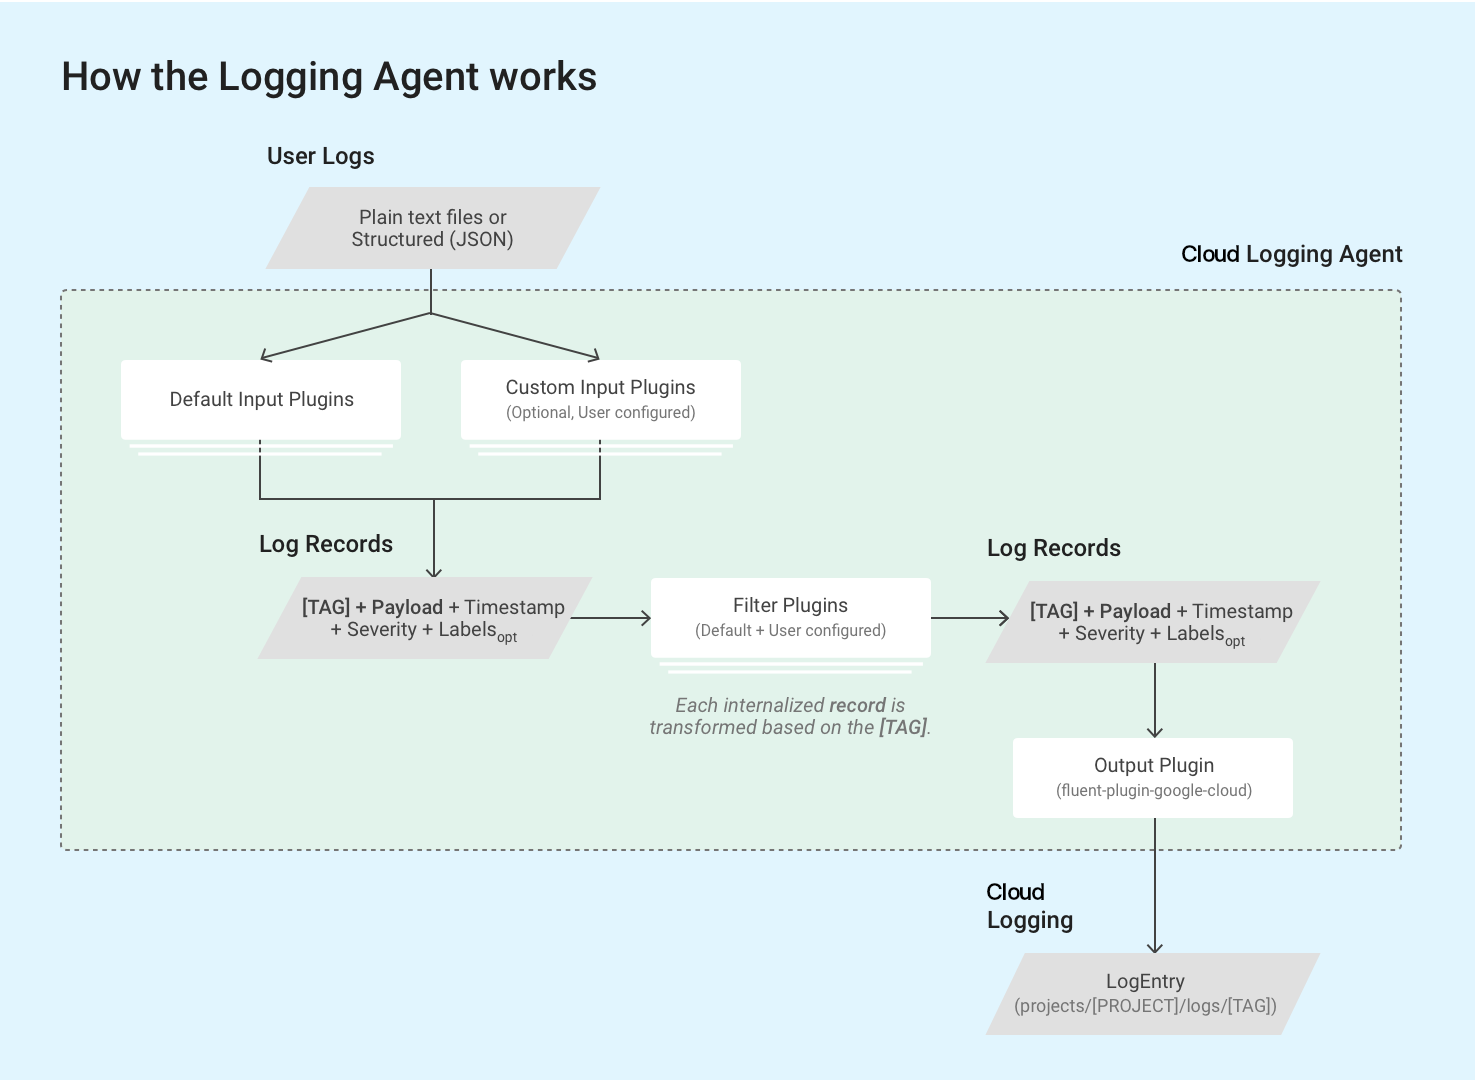 Funktionsweise des Logging-Agents